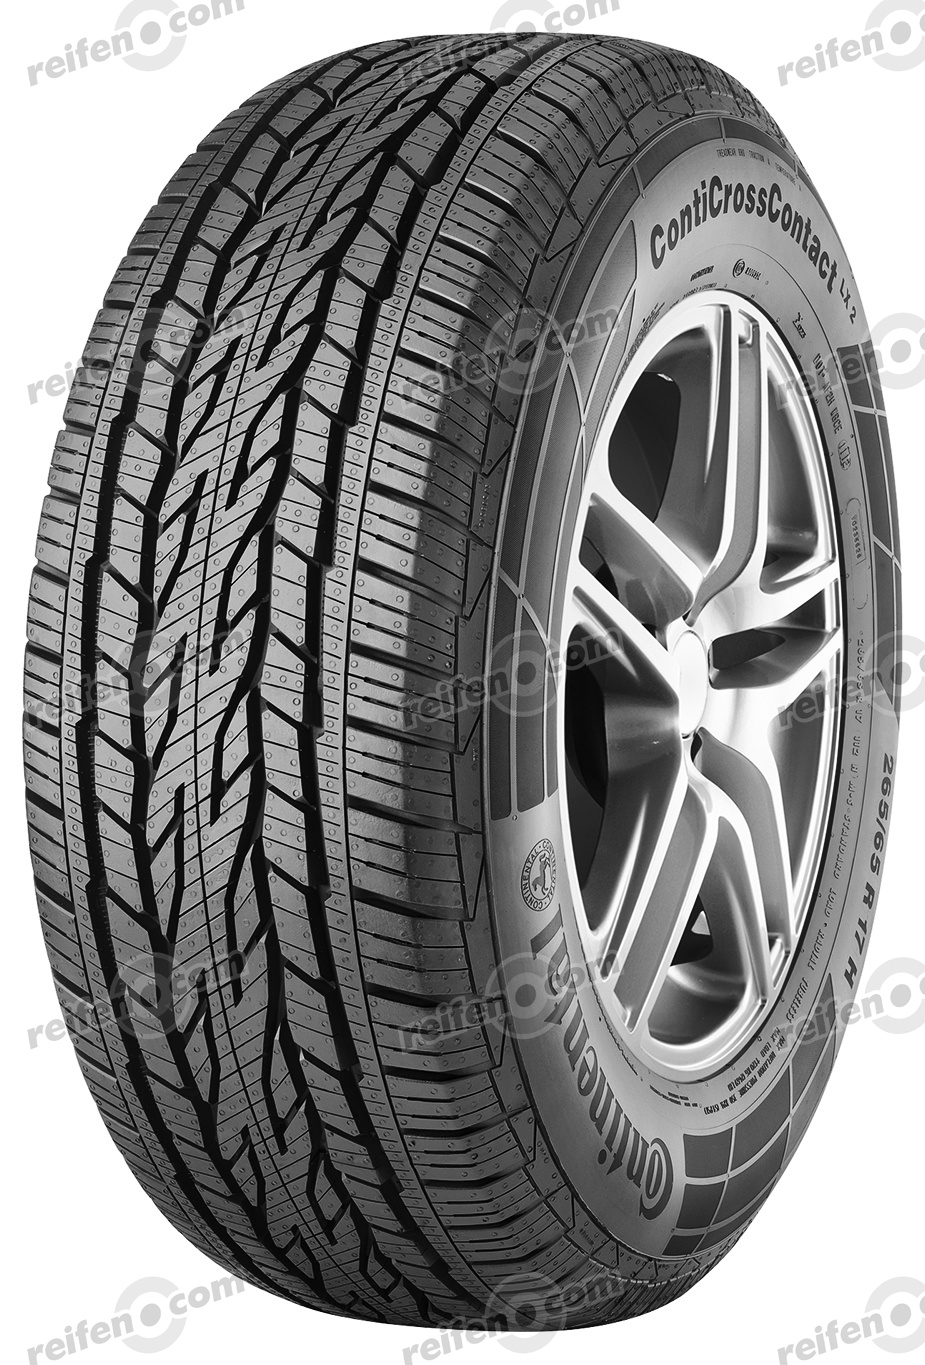 225/65 R17 102H CrossContact LX 2 FR BSW  CrossContact LX 2 FR BSW